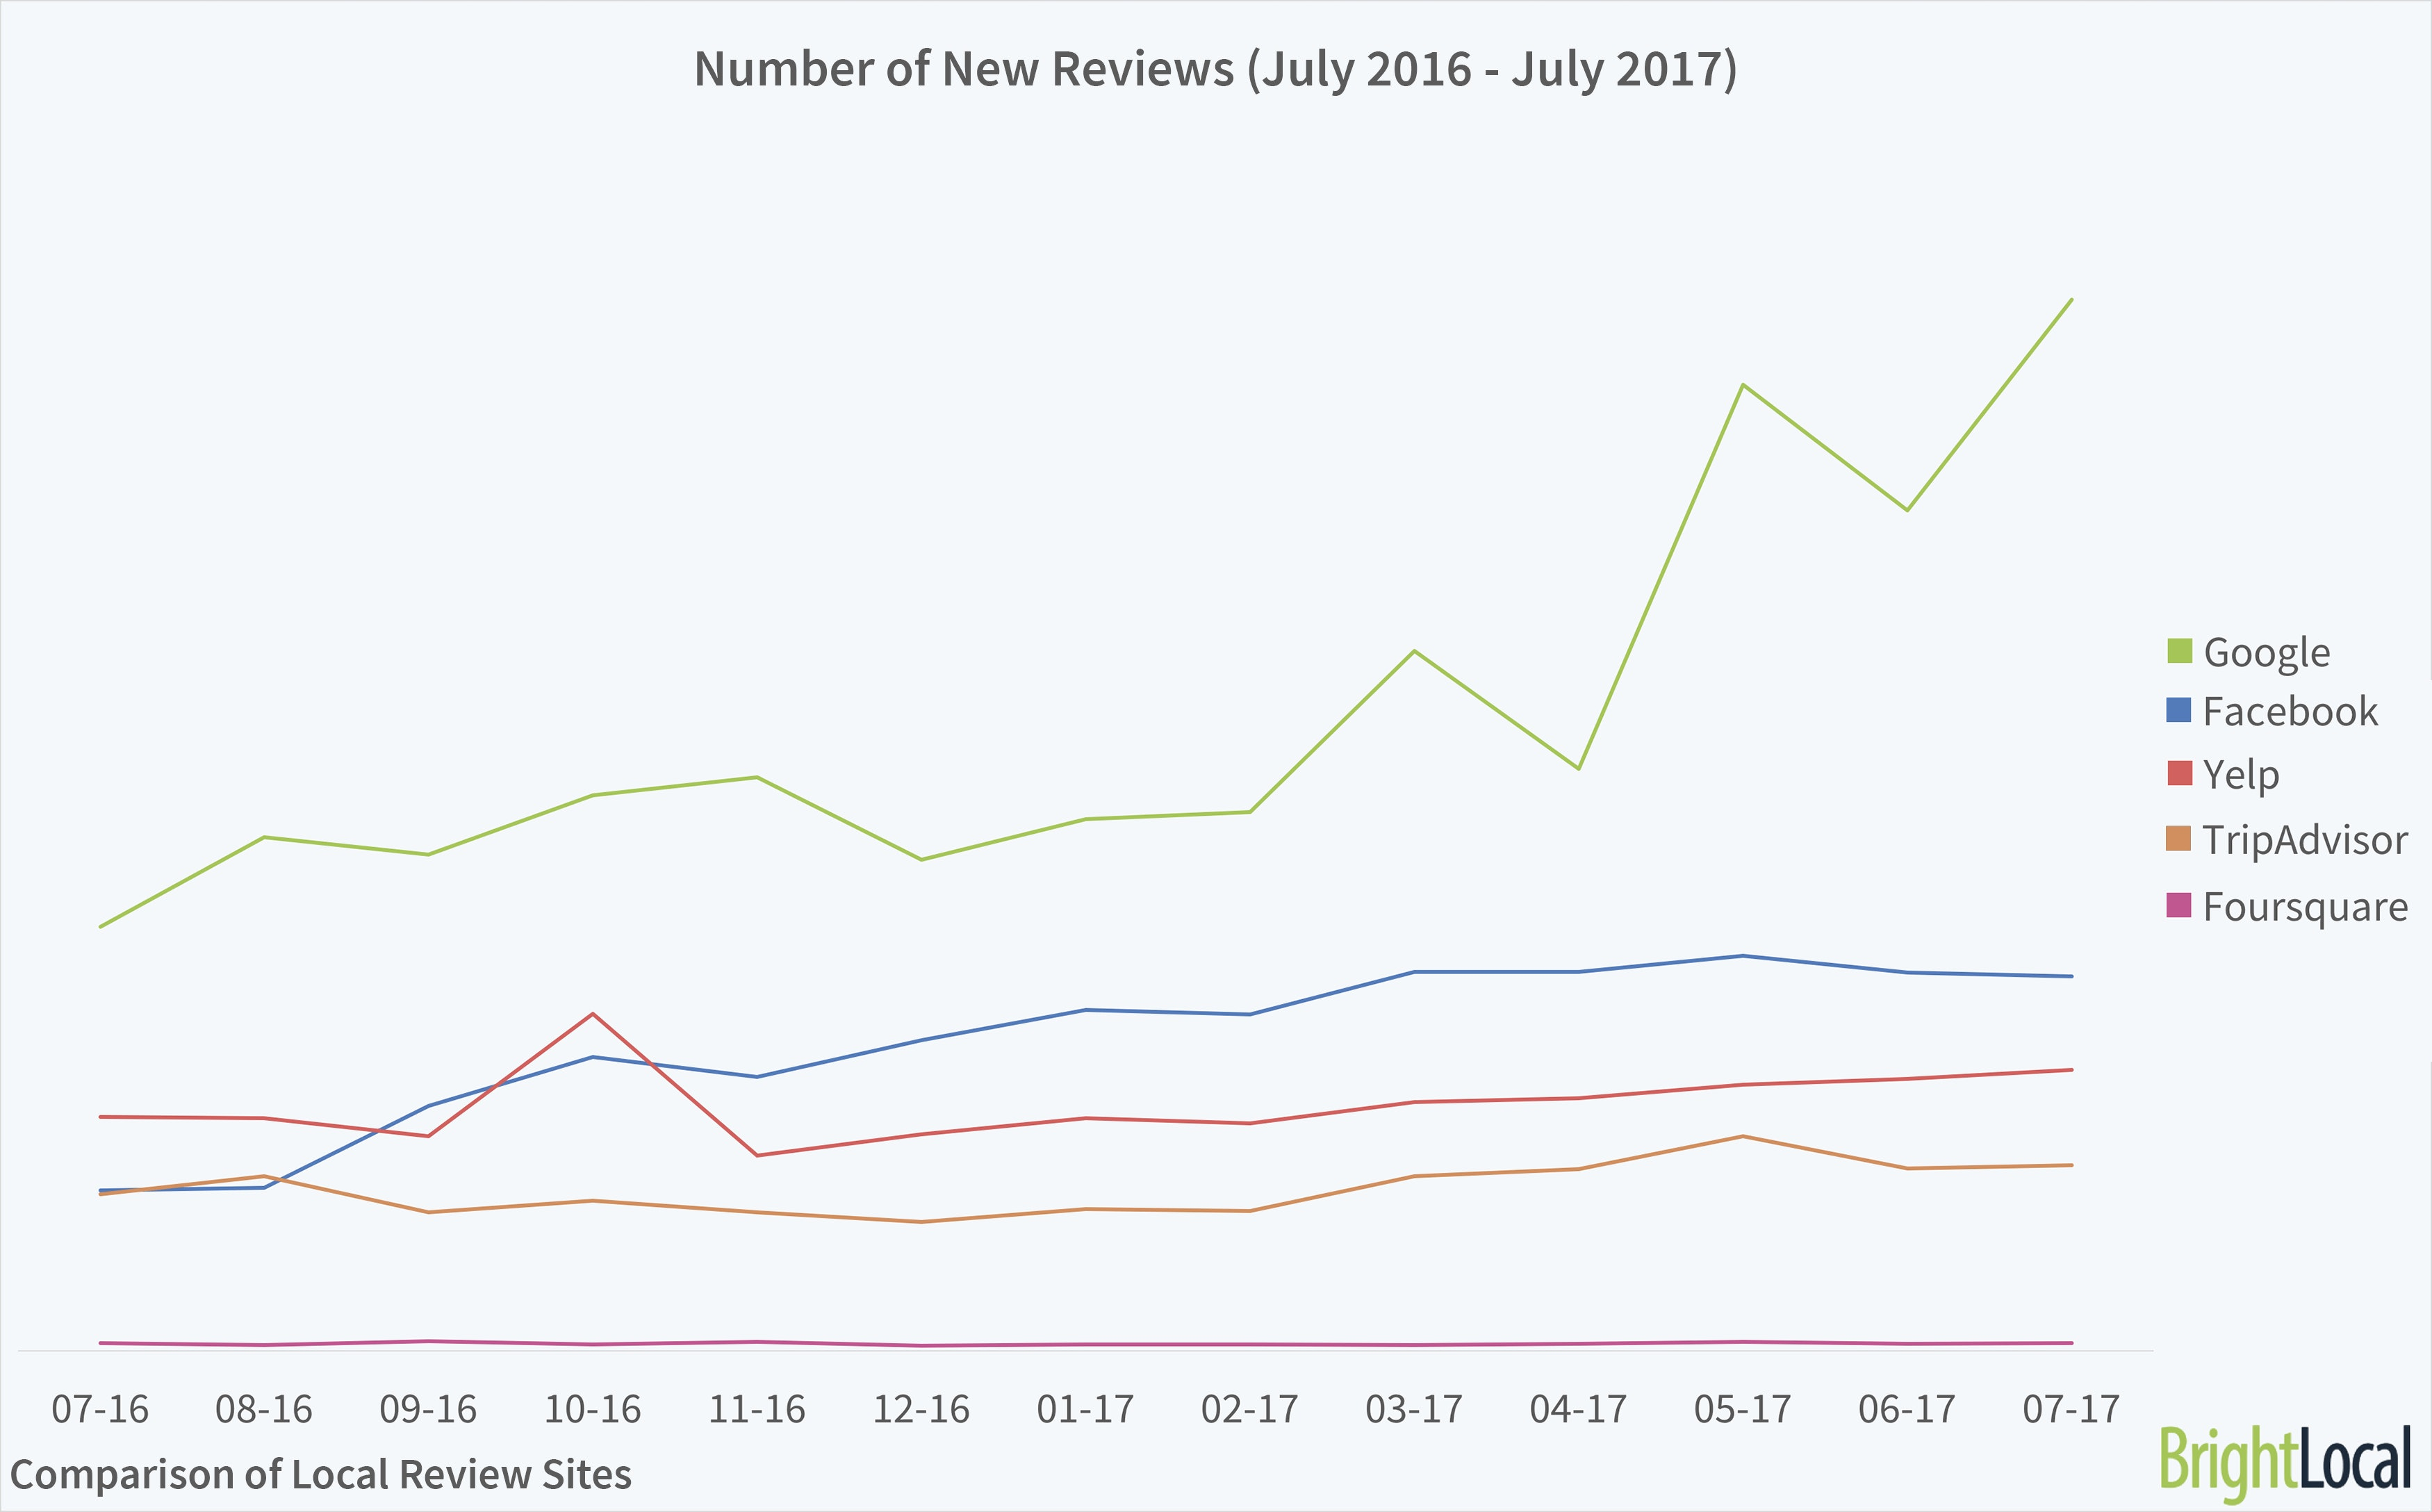 Number of New Reviews 2017